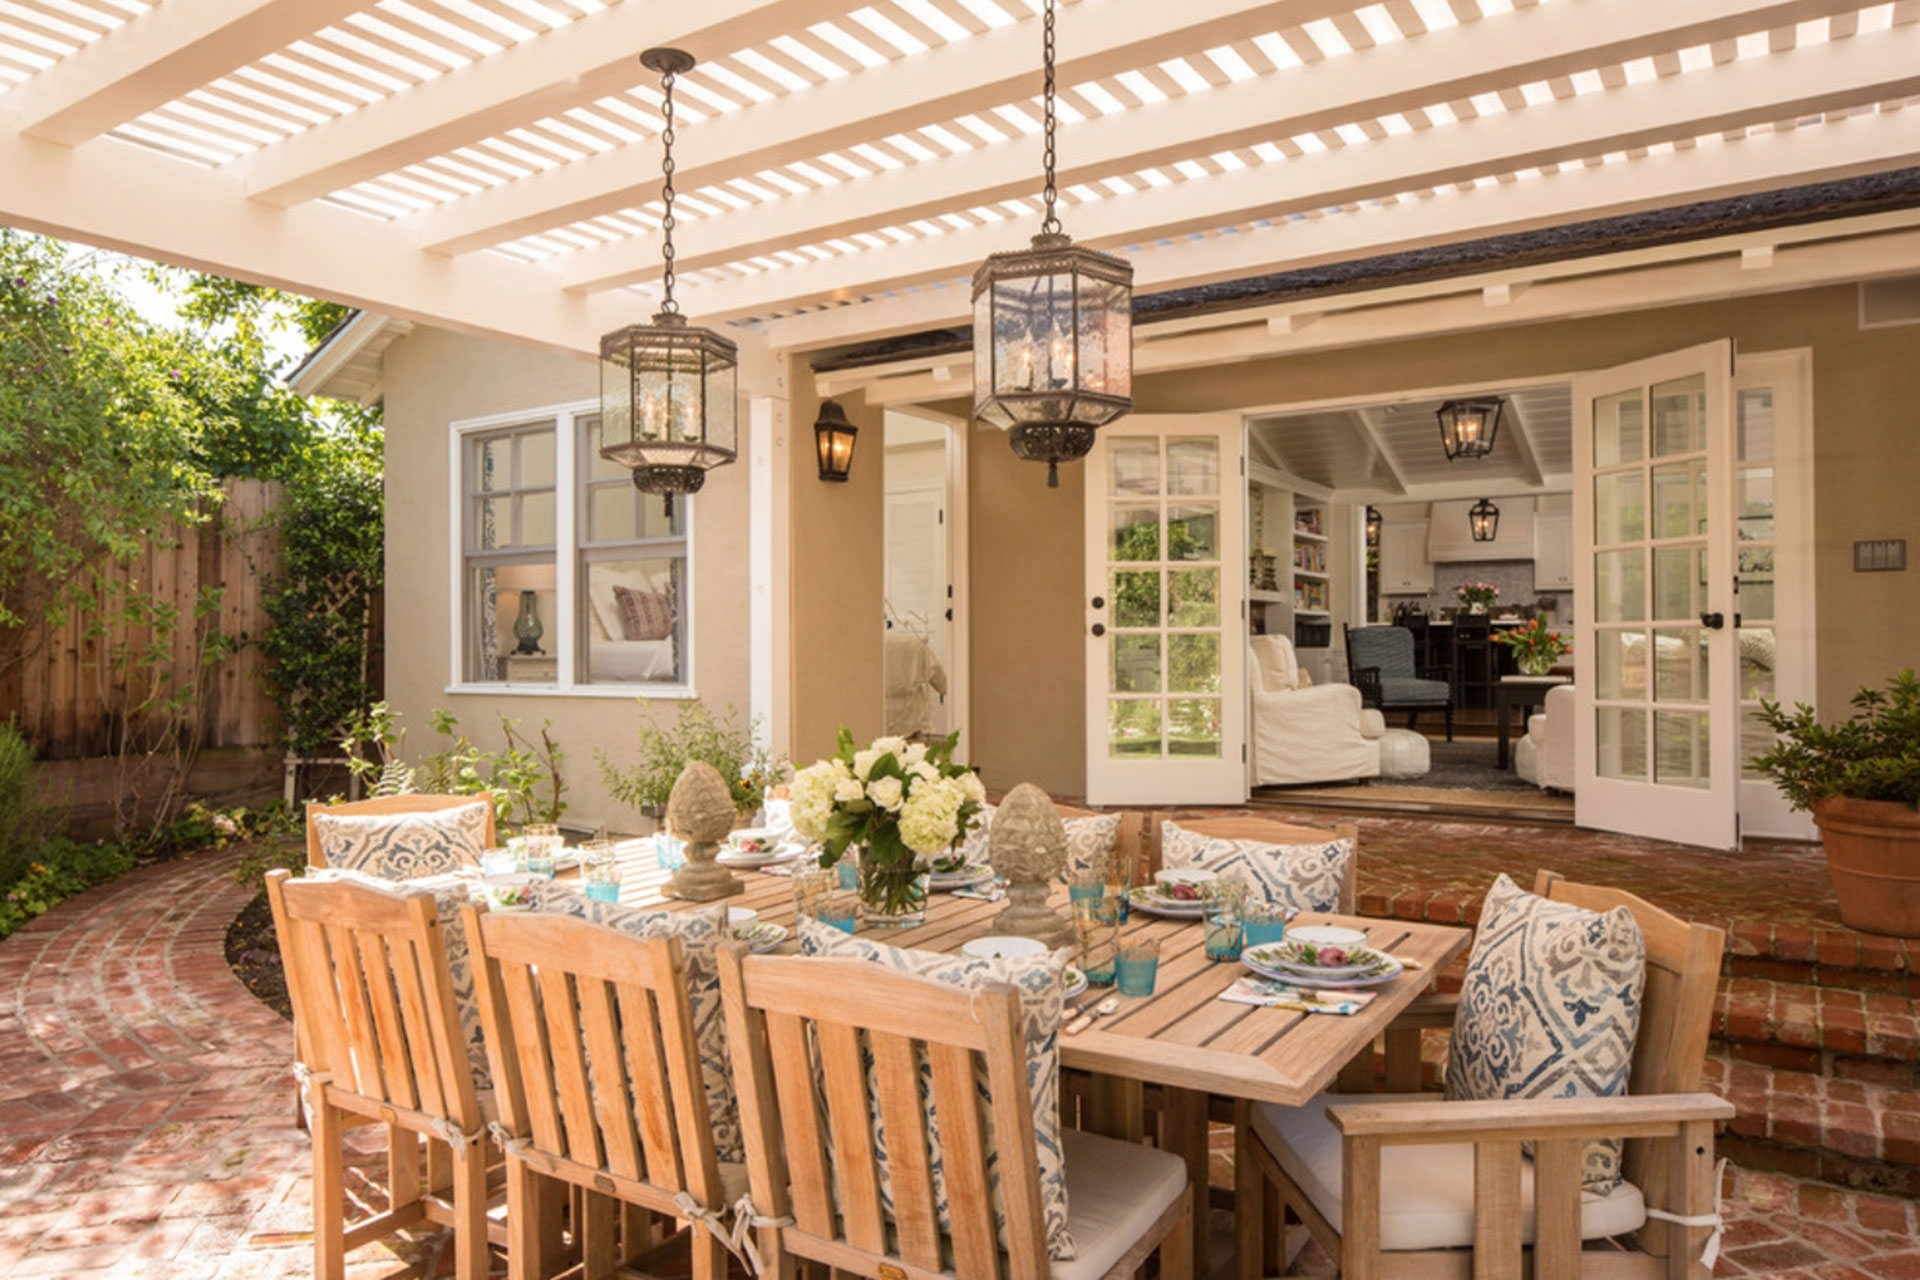 33 Neat Design Outdoor Lantern Lighting Ideas Five Pergola To pertaining to Outdoor Dining Lanterns (Image 3 of 20)